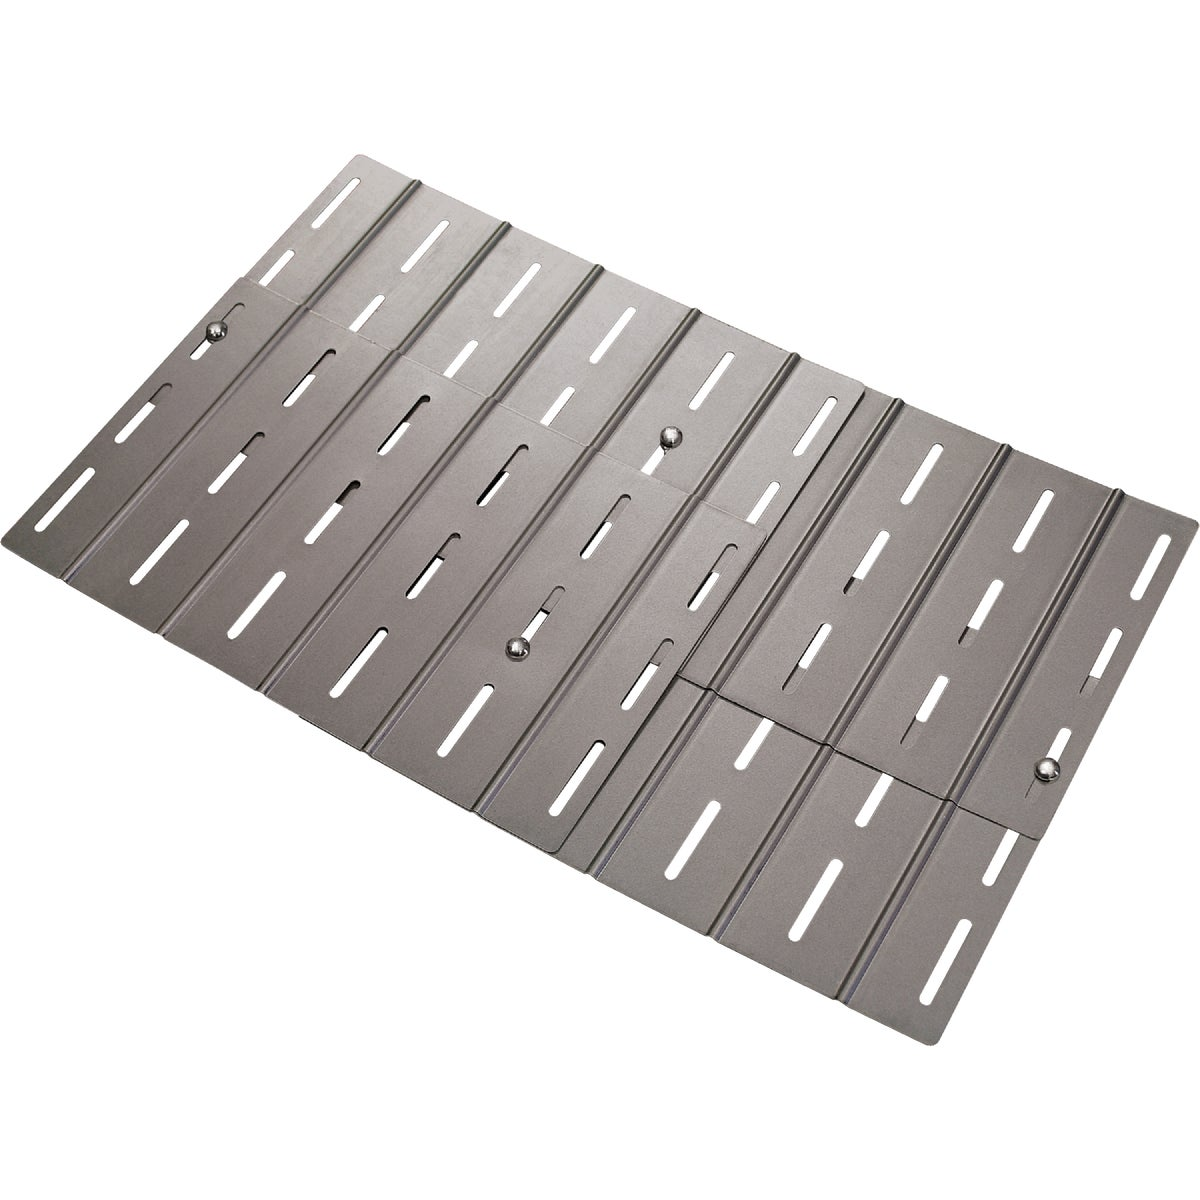 PORCELAIN HEAT PLATE - 92350 by Onward Multi Corp Hk